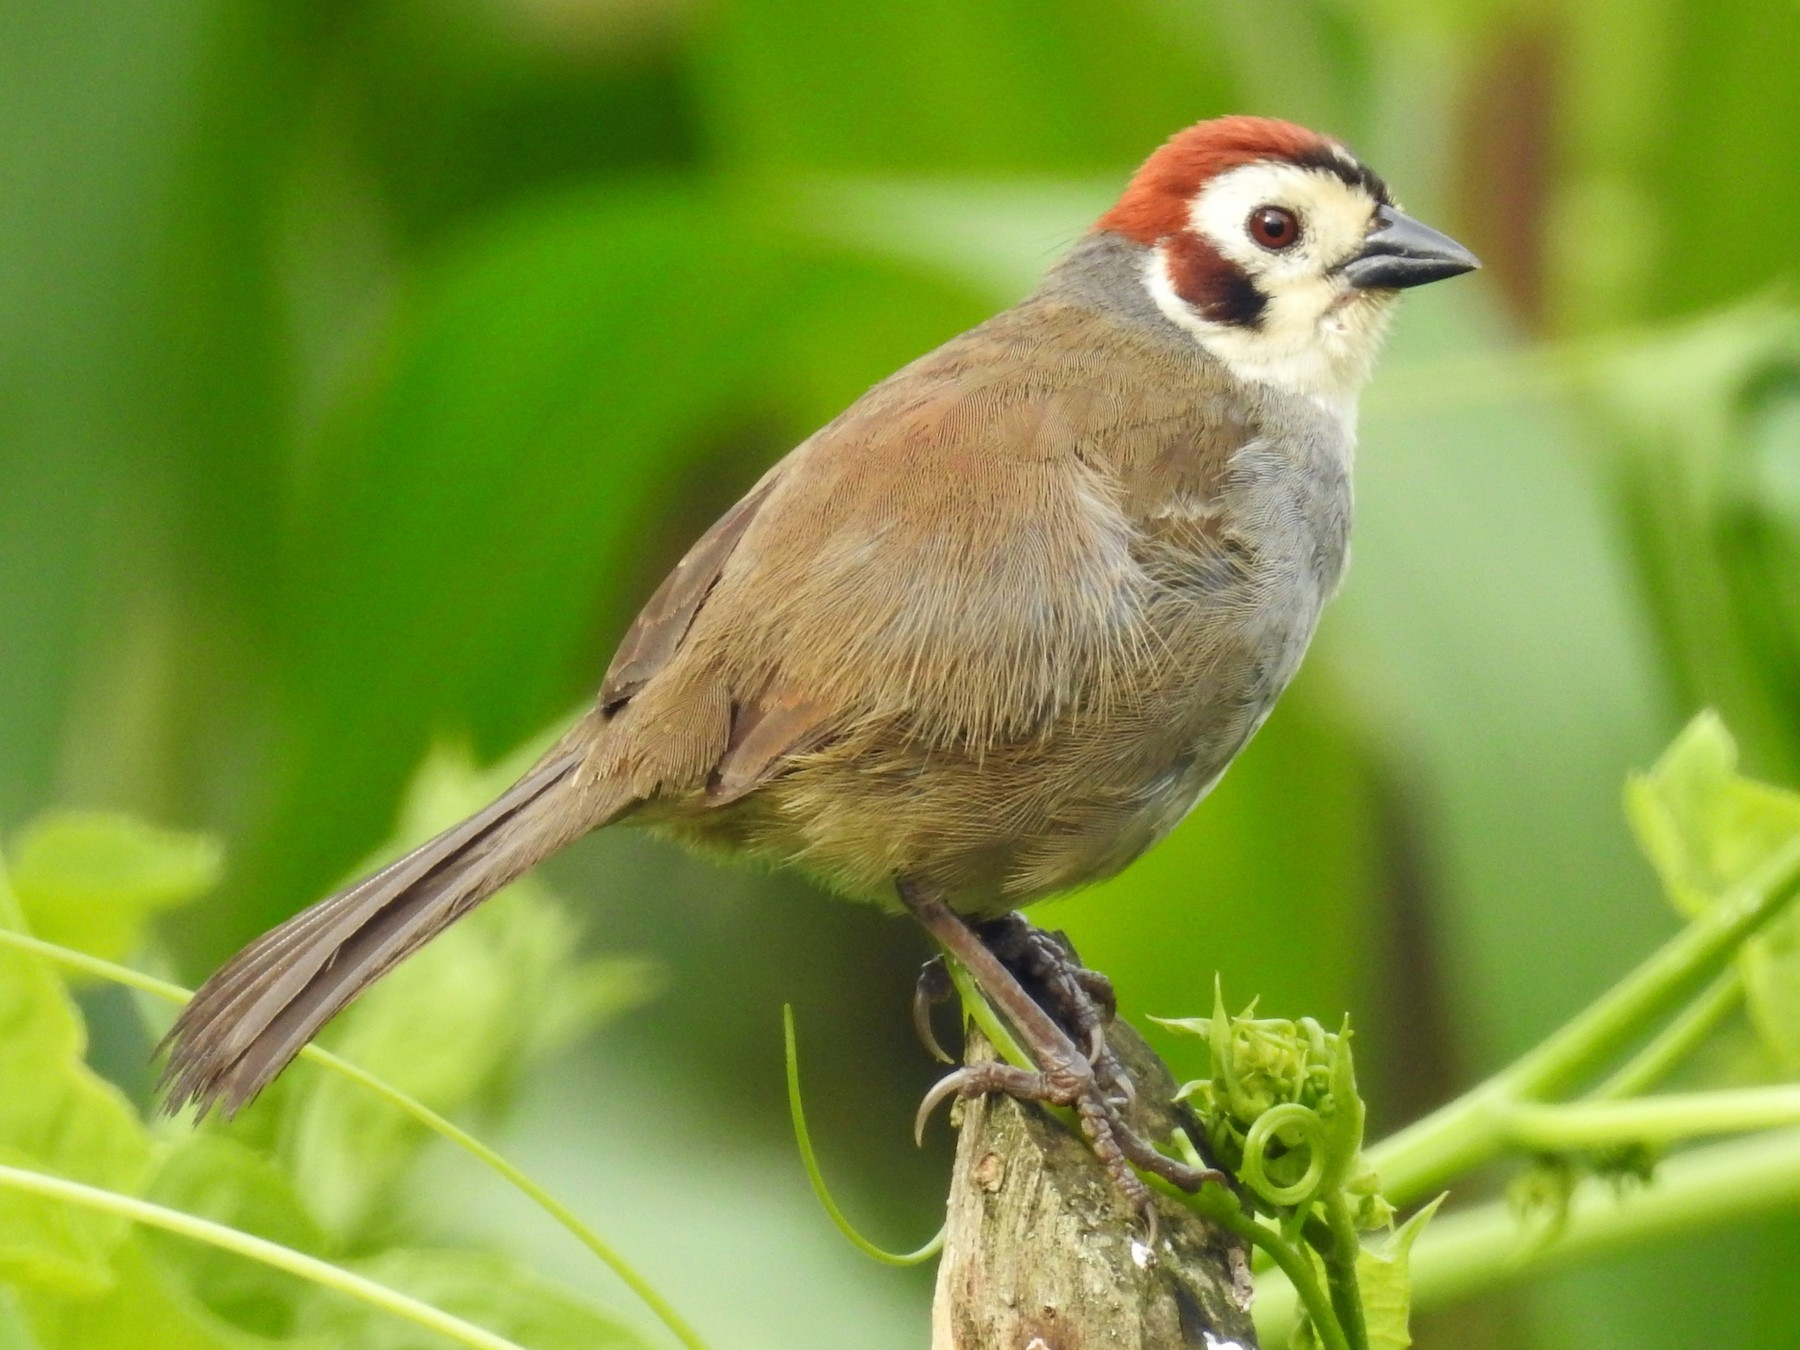 White-faced Ground-Sparrow - Rudy  Botzoc